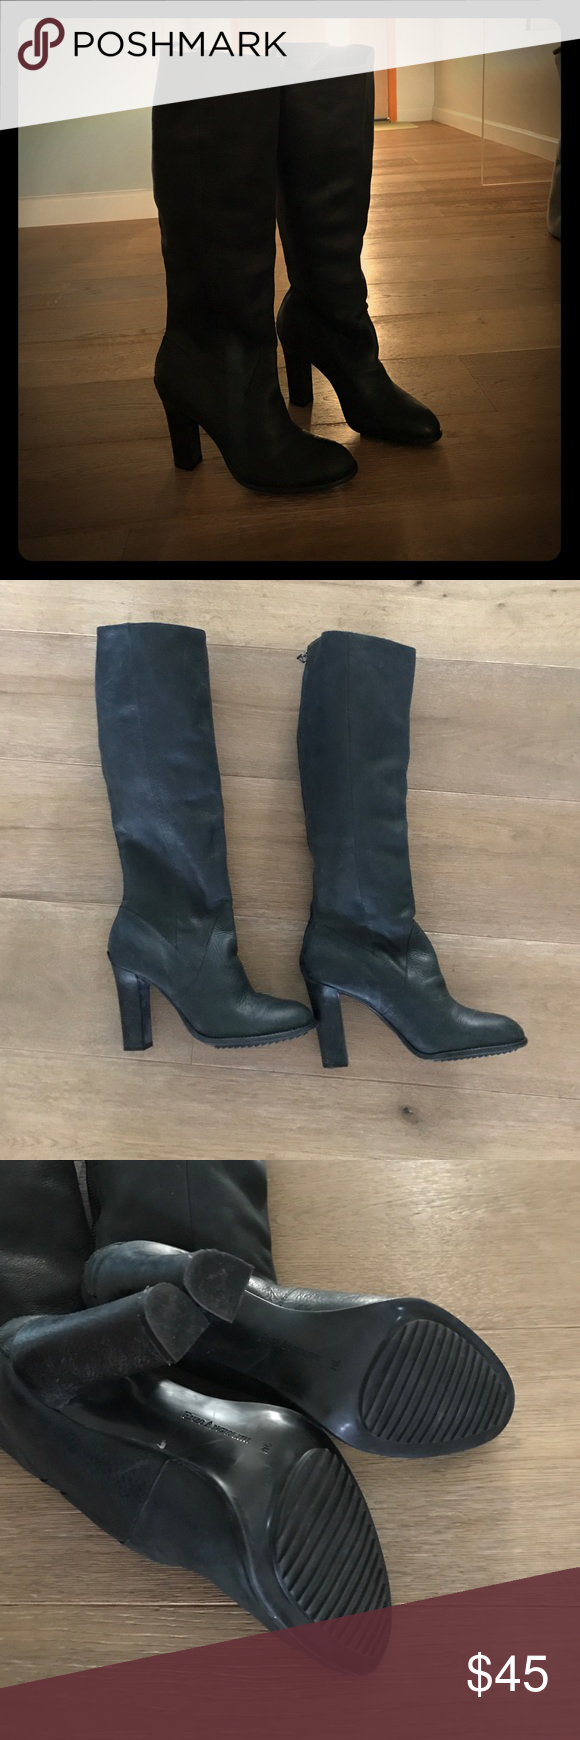 Enzo Angioloni Karissa Black Leather Boots 9M Like New Enzo Angioloni Karissa Black Leather Boots 9M. Only worn 1 time.  Black color. Leather heel height: 4 inches. Shaft: 16 inches circumference.  Boot opening 15.5 inches around. Sits right below the knee. Enzo Angiolini Shoes Heeled Boots